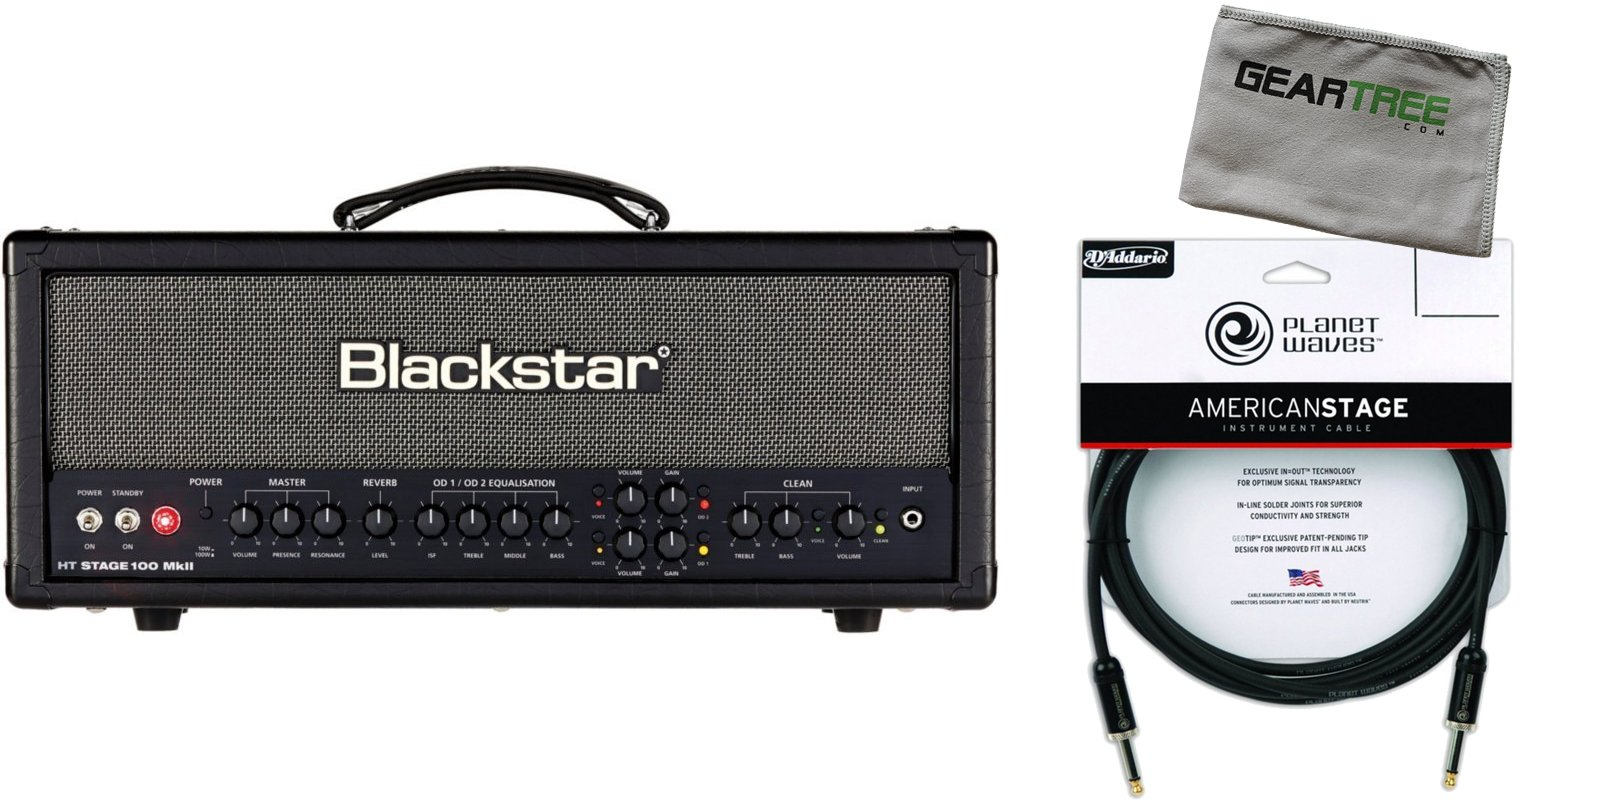 Blackstar STAGE100HMKII 100W GUITAR HEAD w/ Premium Instrument Cable and Geartree Cloth